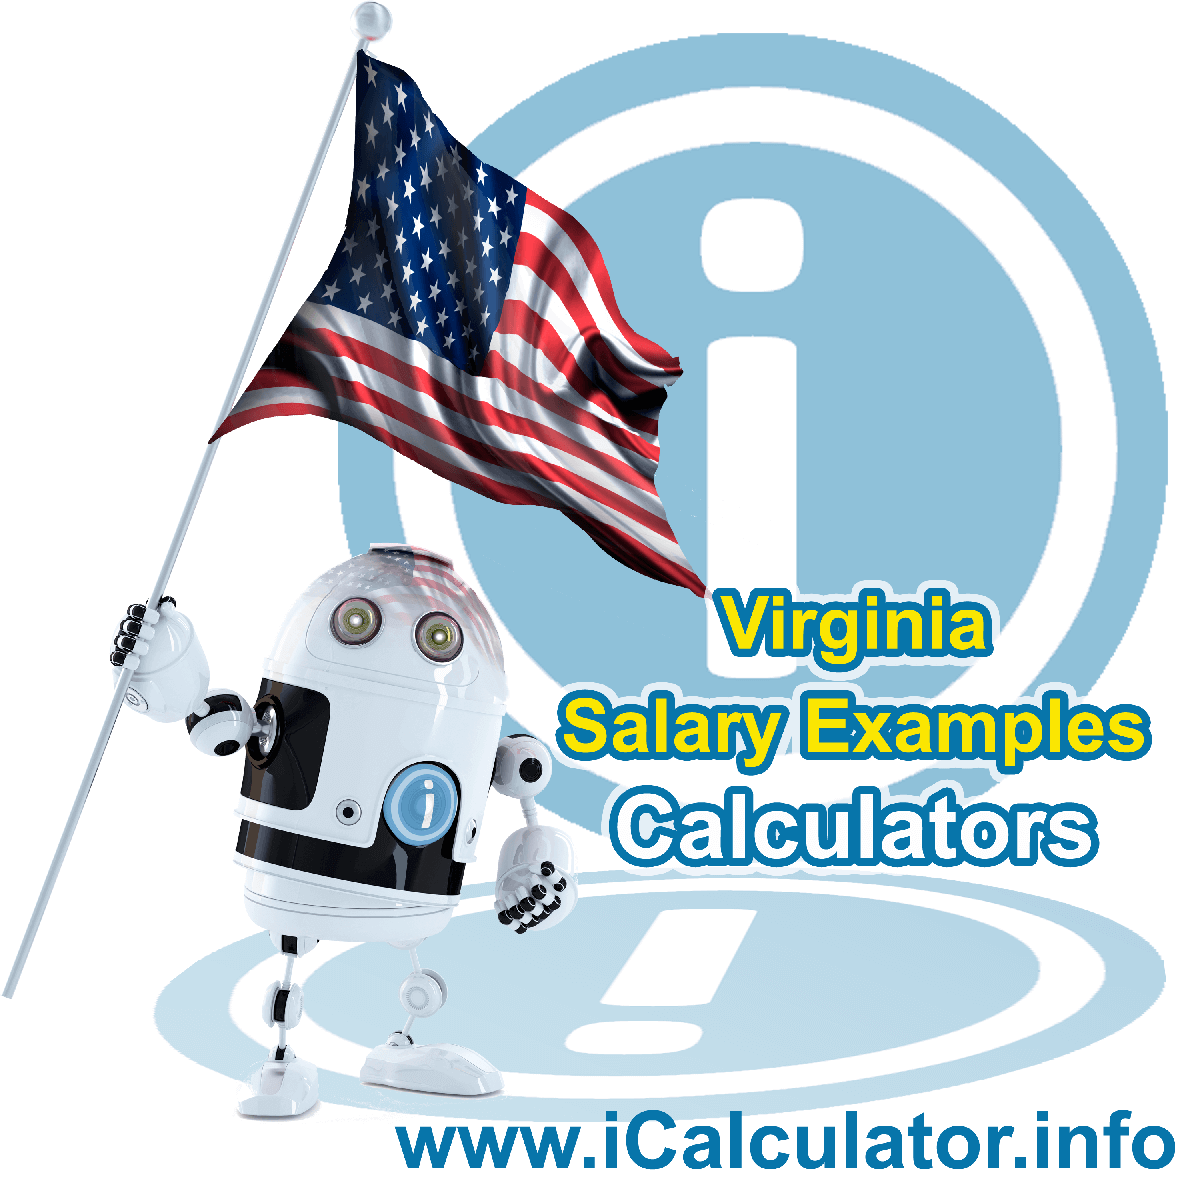 Virginia Salary Example for $10.00 in 2020 | iCalculator | $10.00 salary example for employee and employer paying Virginia State tincome taxes. Detailed salary after tax calculation including Virginia State Tax, Federal State Tax, Medicare Deductions, Social Security, Capital Gains and other income tax and salary deductions complete with supporting Virginia state tax tables